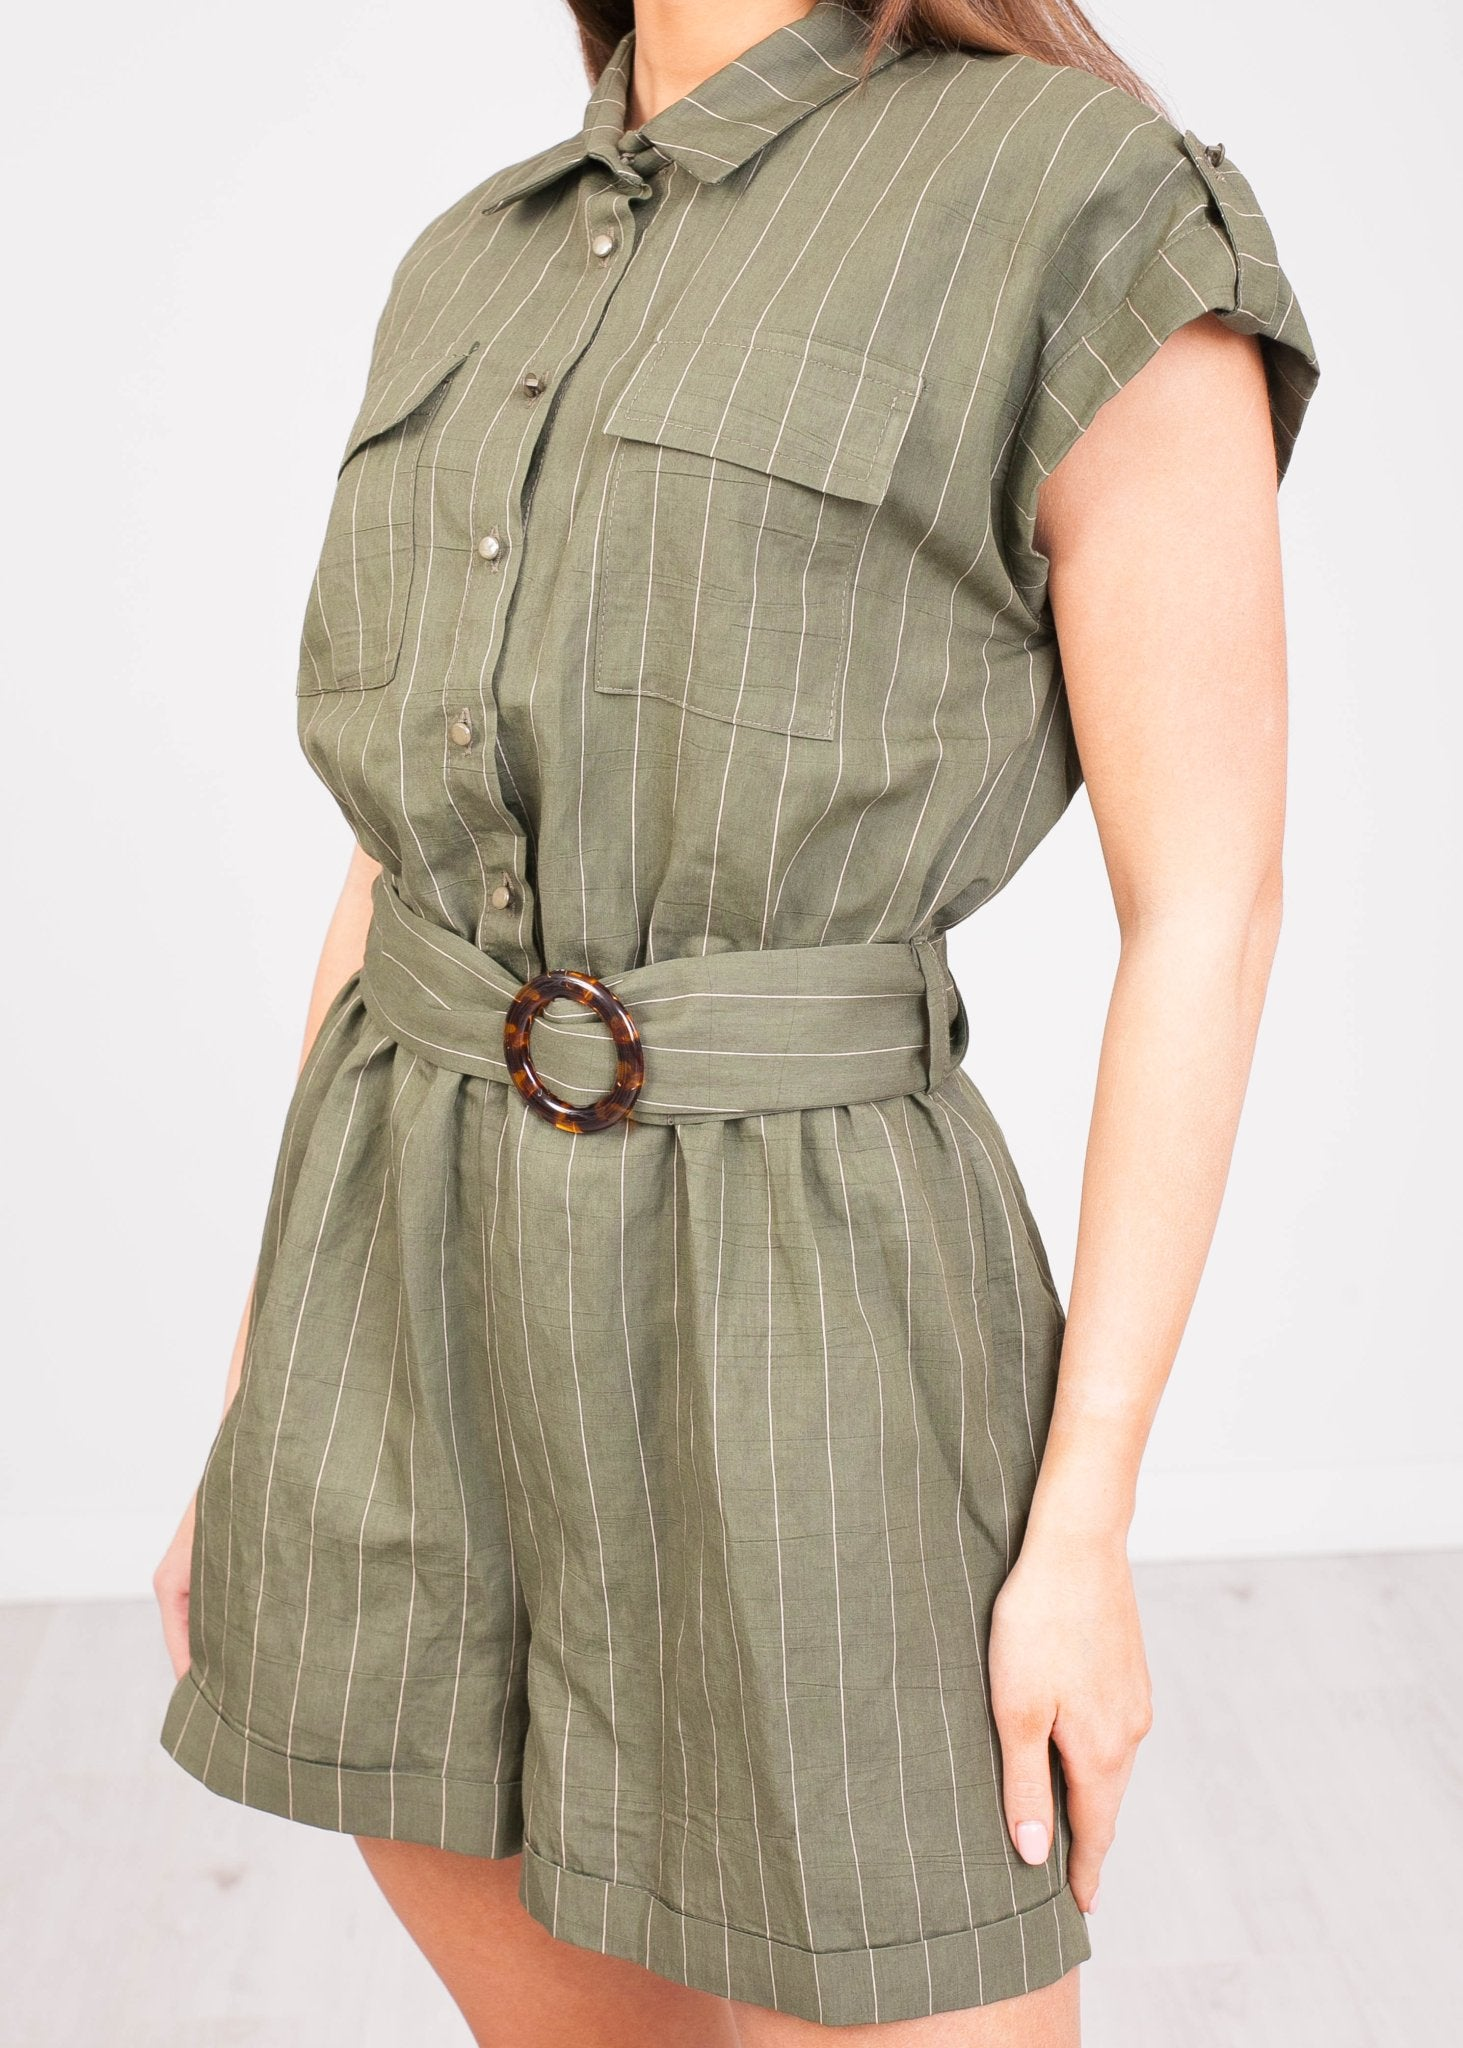 Sophia Khaki Pinstripe Playsuit - The Walk in Wardrobe